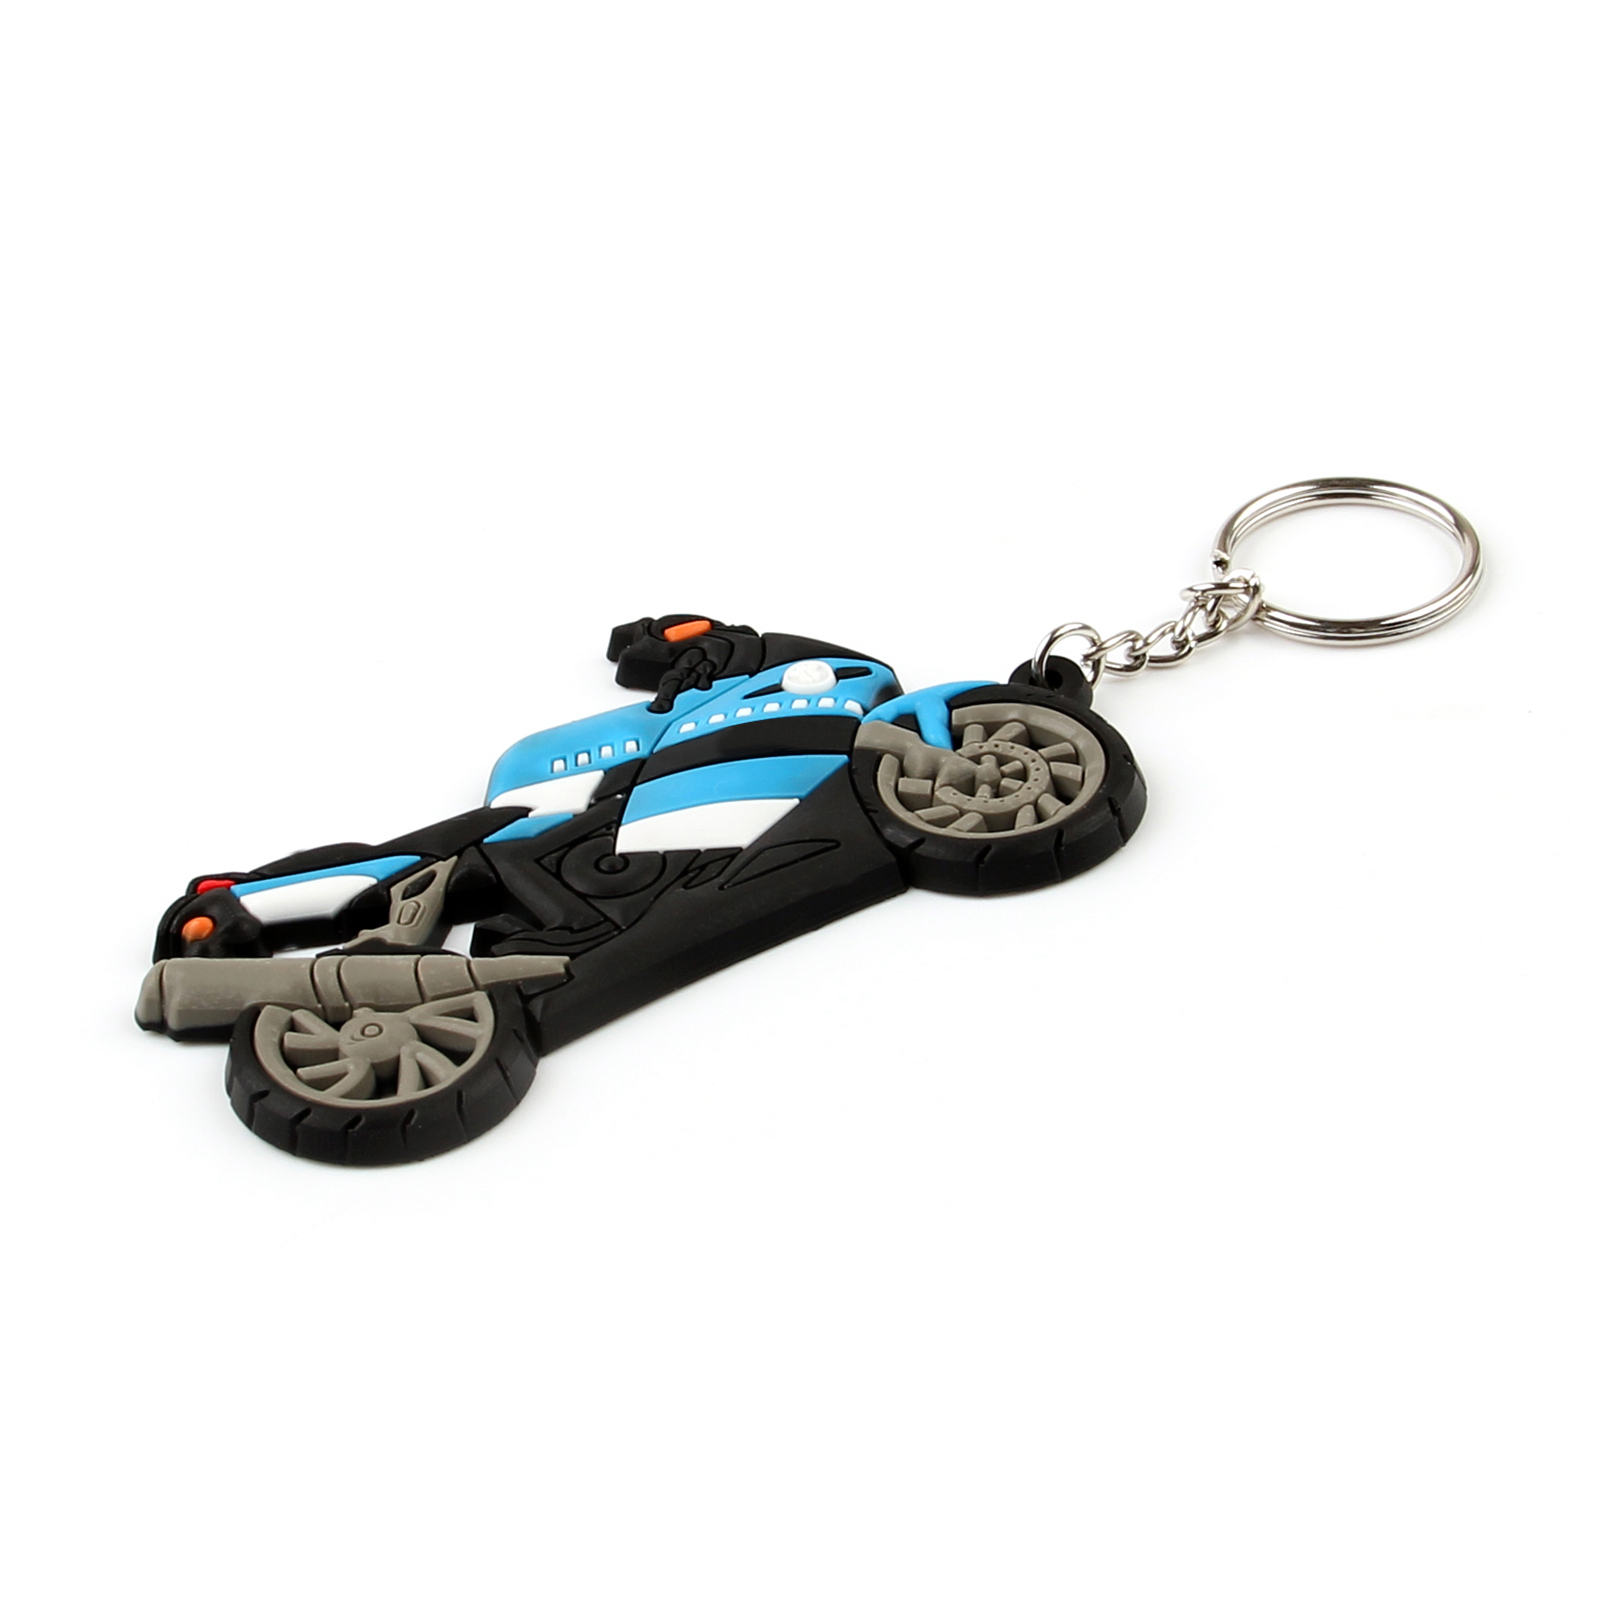 Rubber Motorcycle Model Cool Keyring Keychain Key Chain